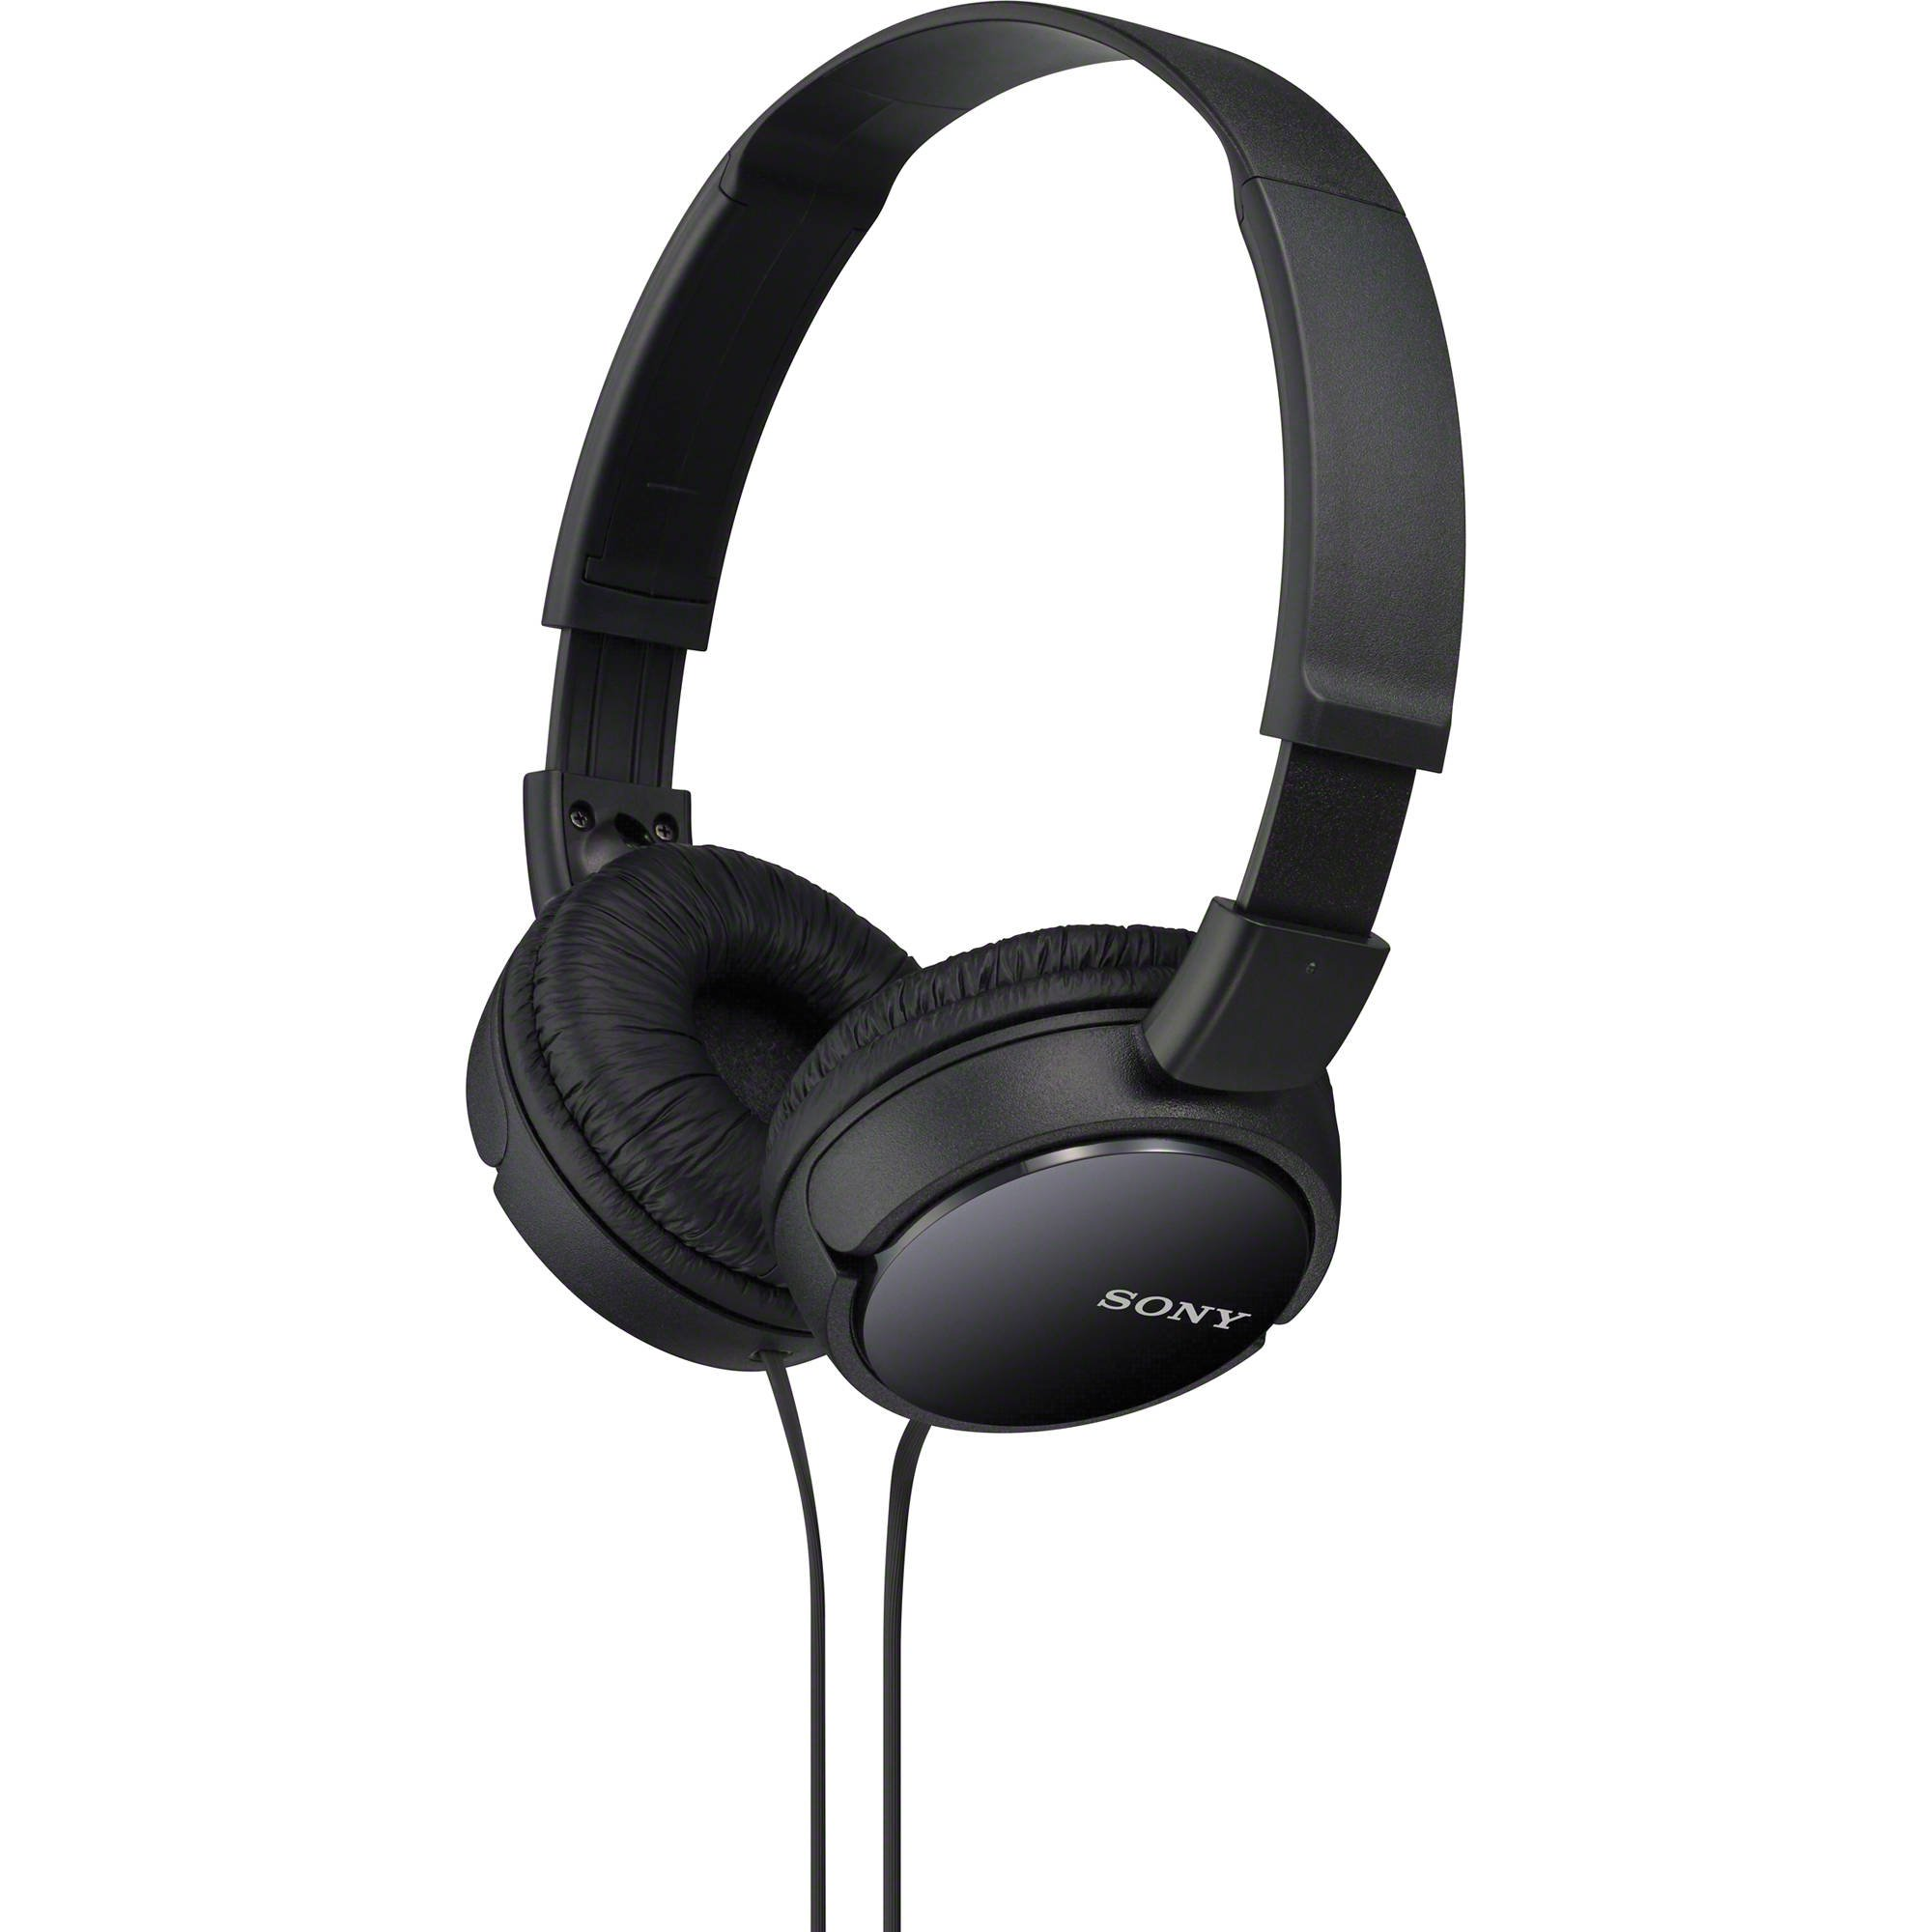 Sony Slim Lightweight Dynamic Studio Monitor Stereo Headphones with Pressure Relieving Earpads, Swivel Earcups, High Power Neodymium Magnets, 30mm Deep Bass Drivers, Multi-Layer Dome Diaphragms and a Noise-Reducing Closed Supra-Aural Design - Black - Comp by Sony